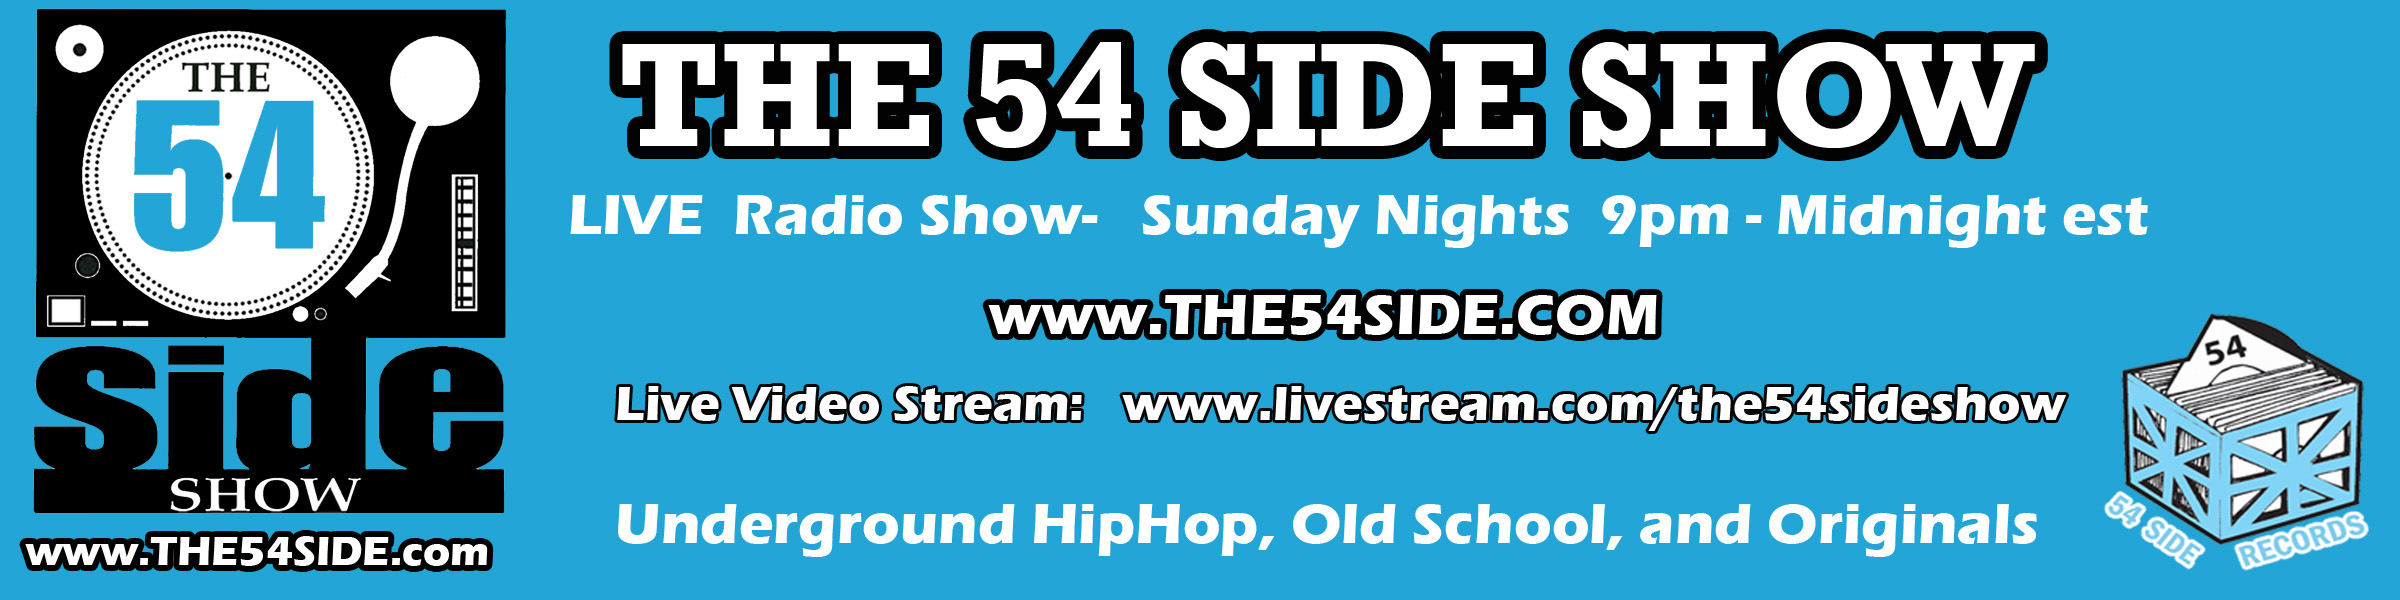 THE 54 SIDE SHOW on Livestream